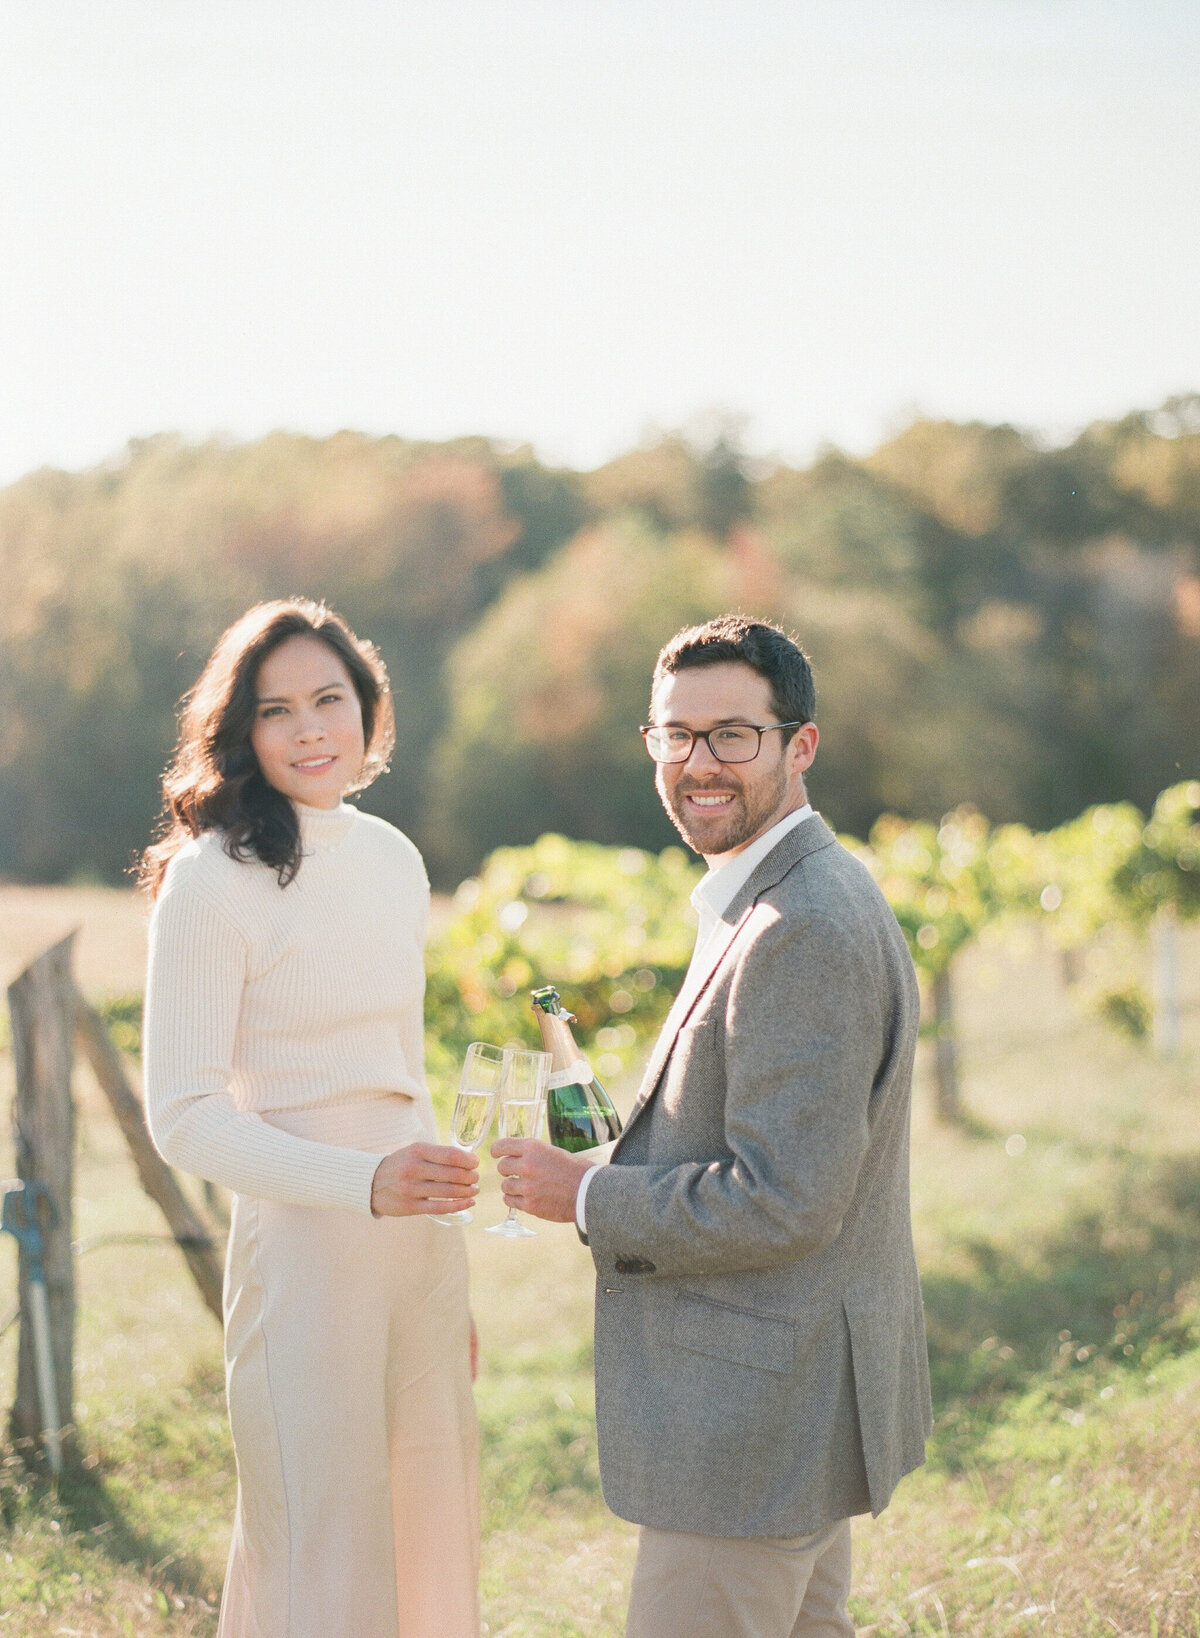 French Vineyard Engagement Photography at The Meadows in Raleigh, NC 11